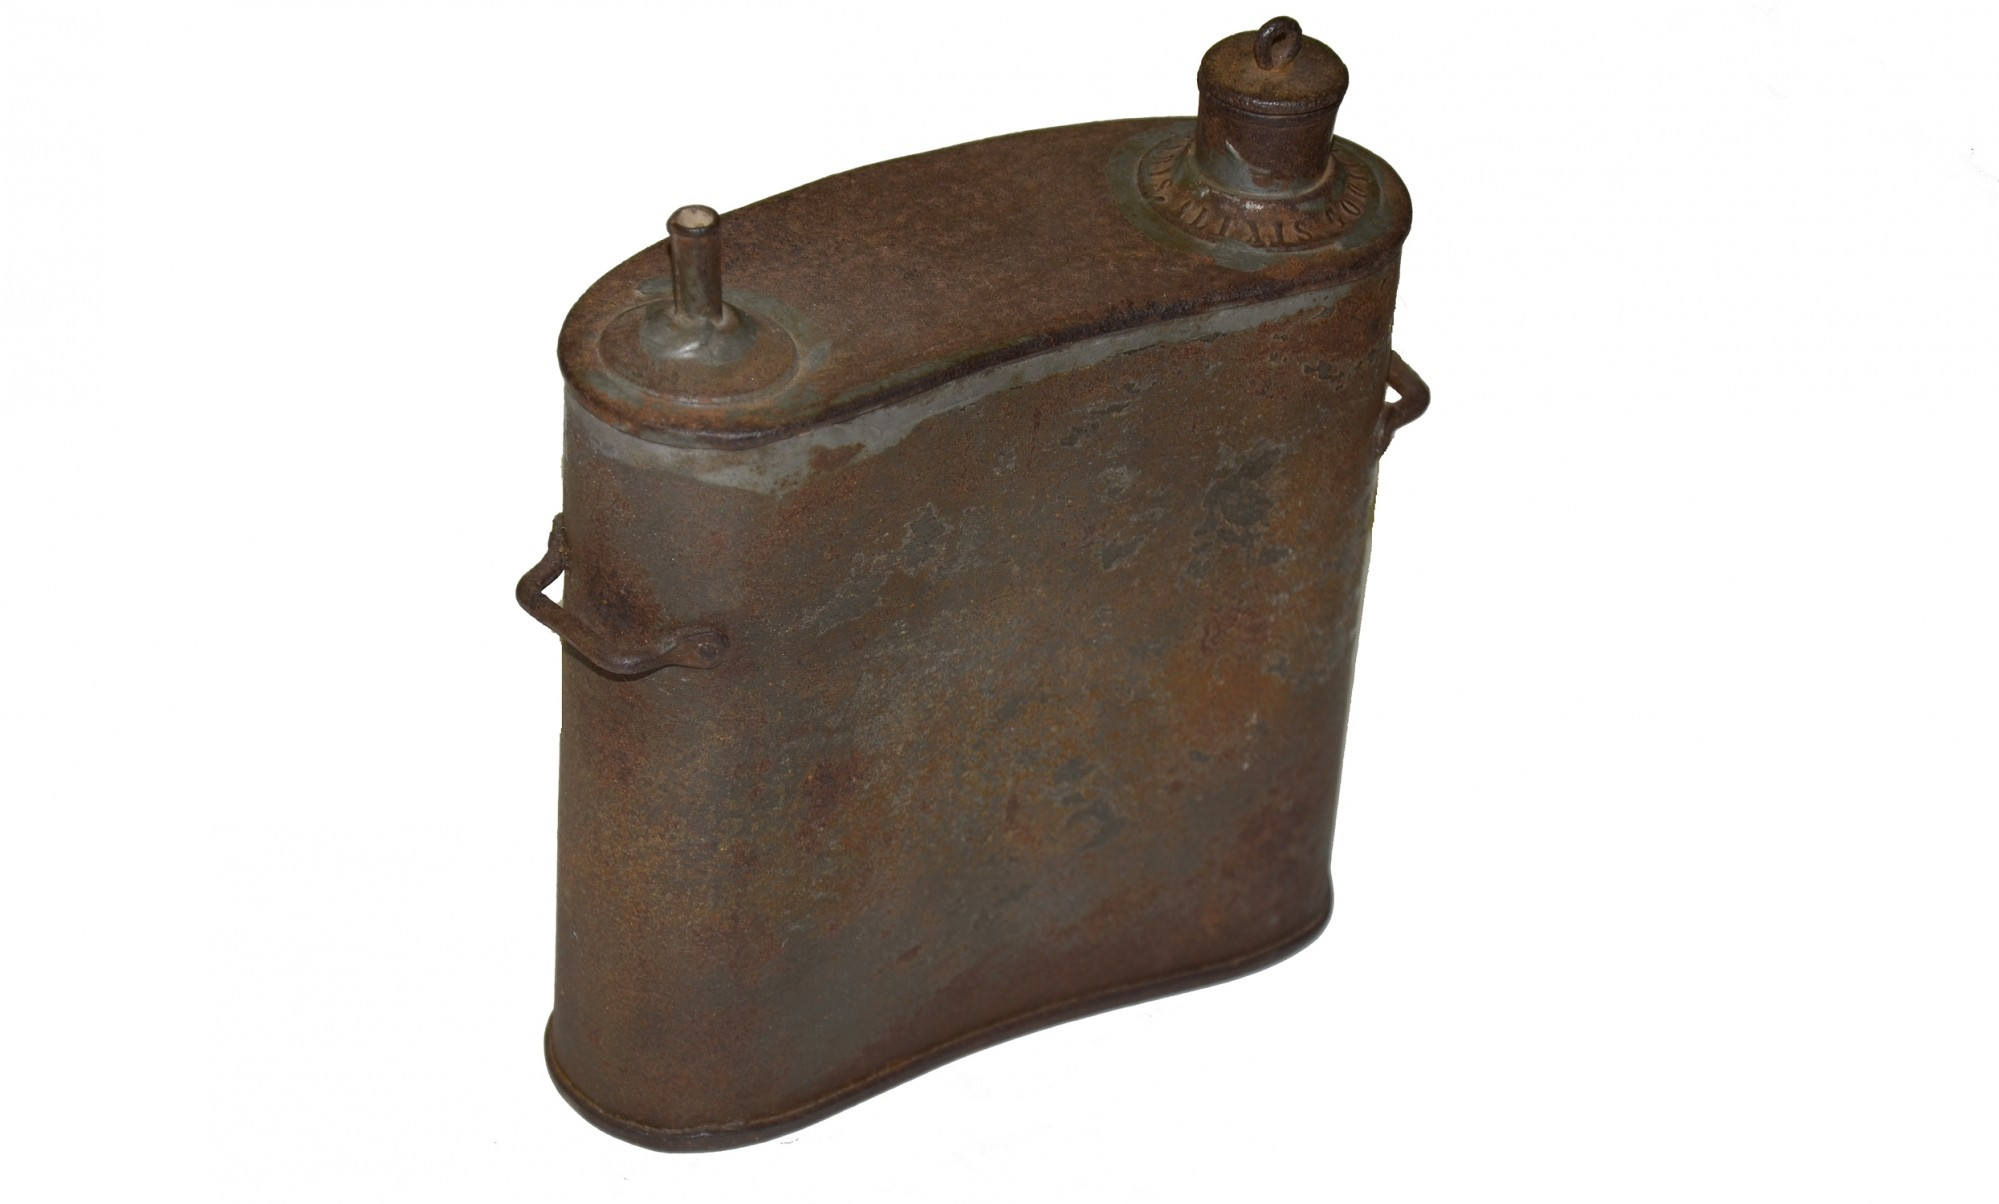 IMPORTED FRENCH DUAL SPOUT CANTEEN